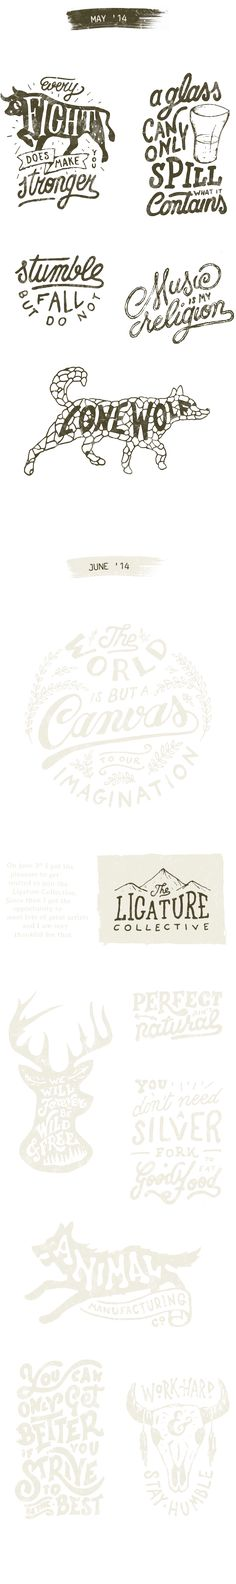 Typography Collection 2014 By: Mark van Leeuwen